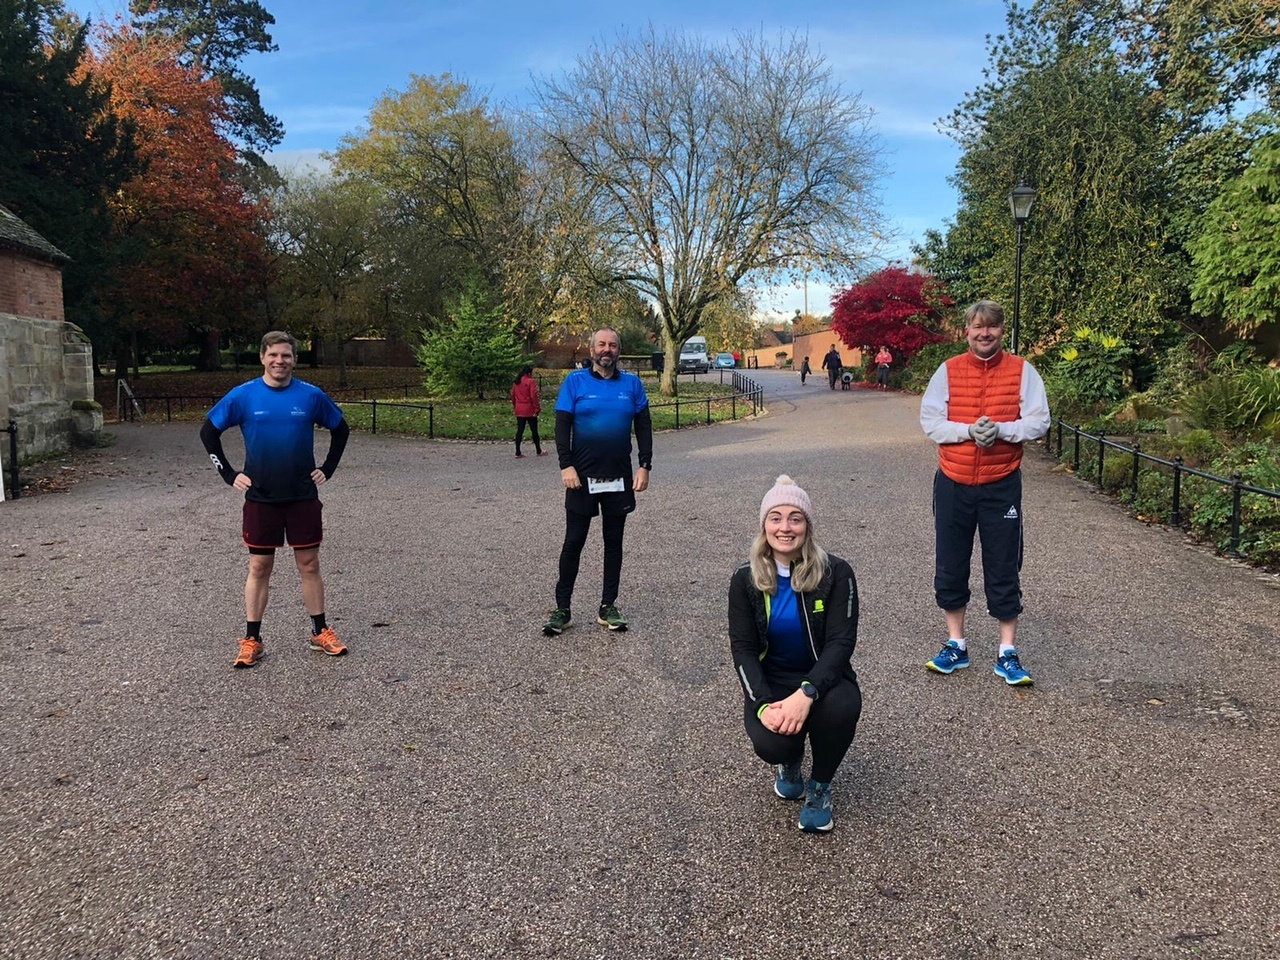 Team BMc completed a virtual 10km challenge to raise money for Age UK